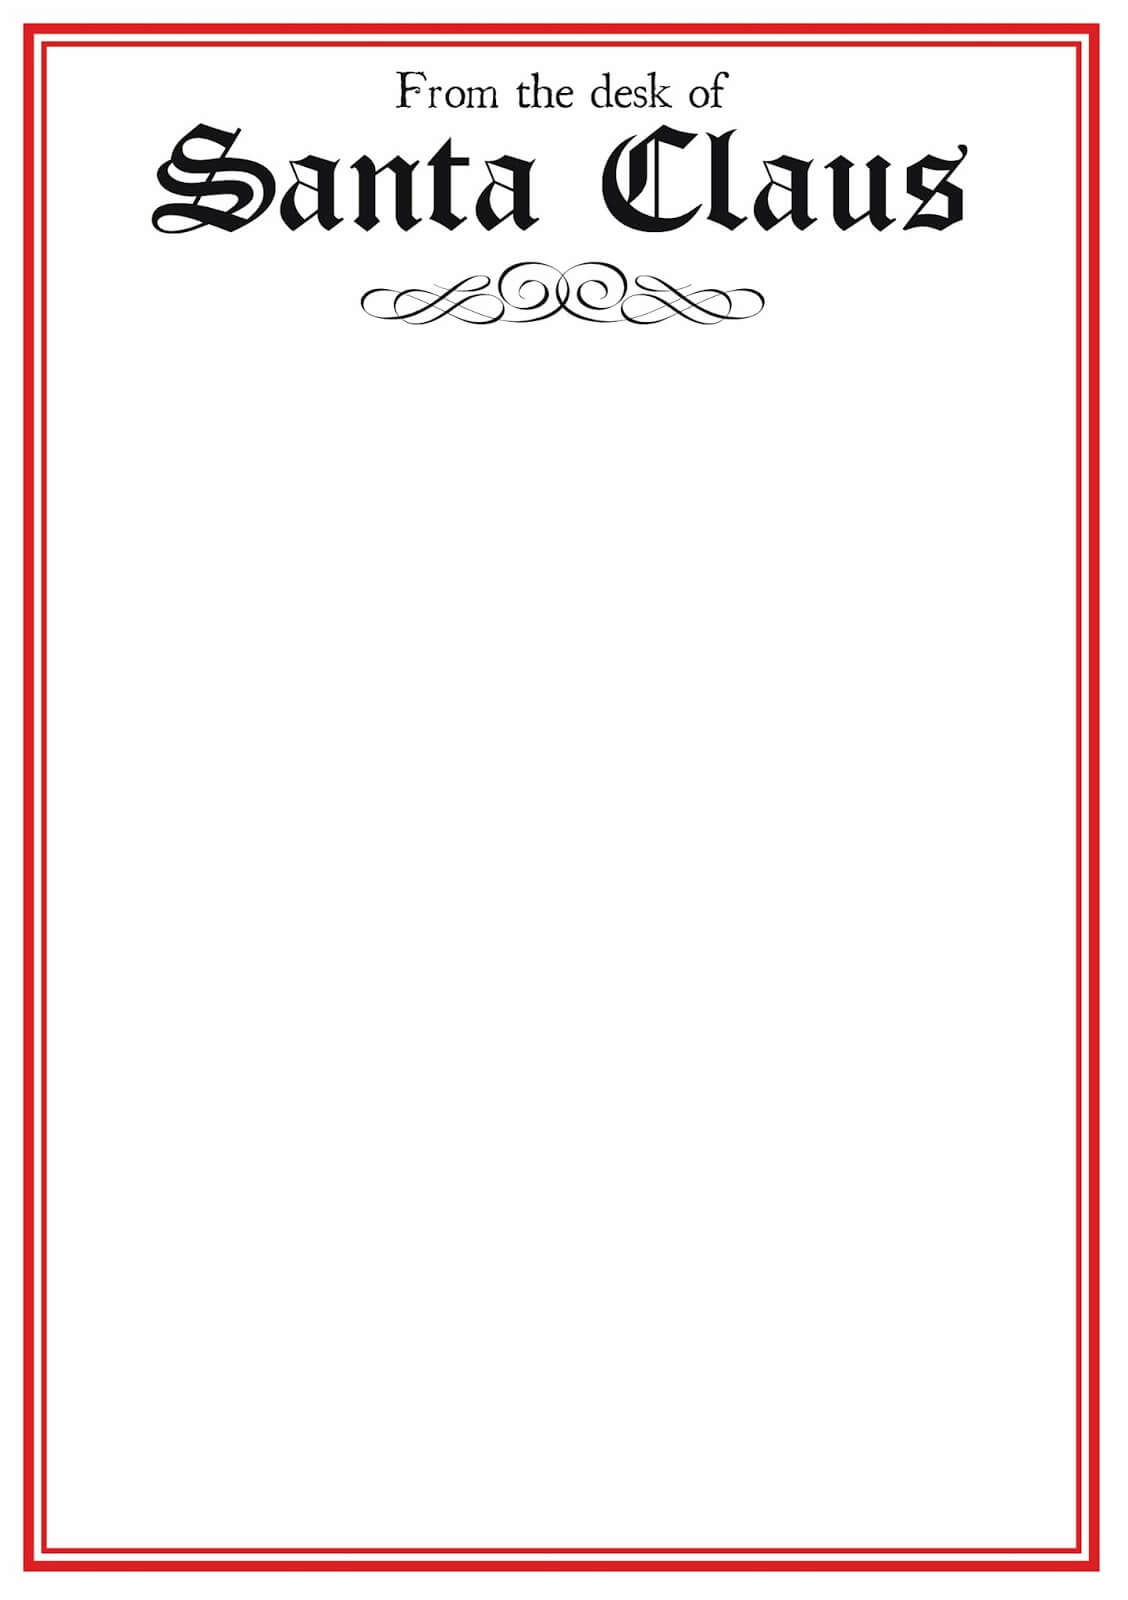 Free Printable Letter From Santa Word Template Samples Intended For Santa Letter Template Word